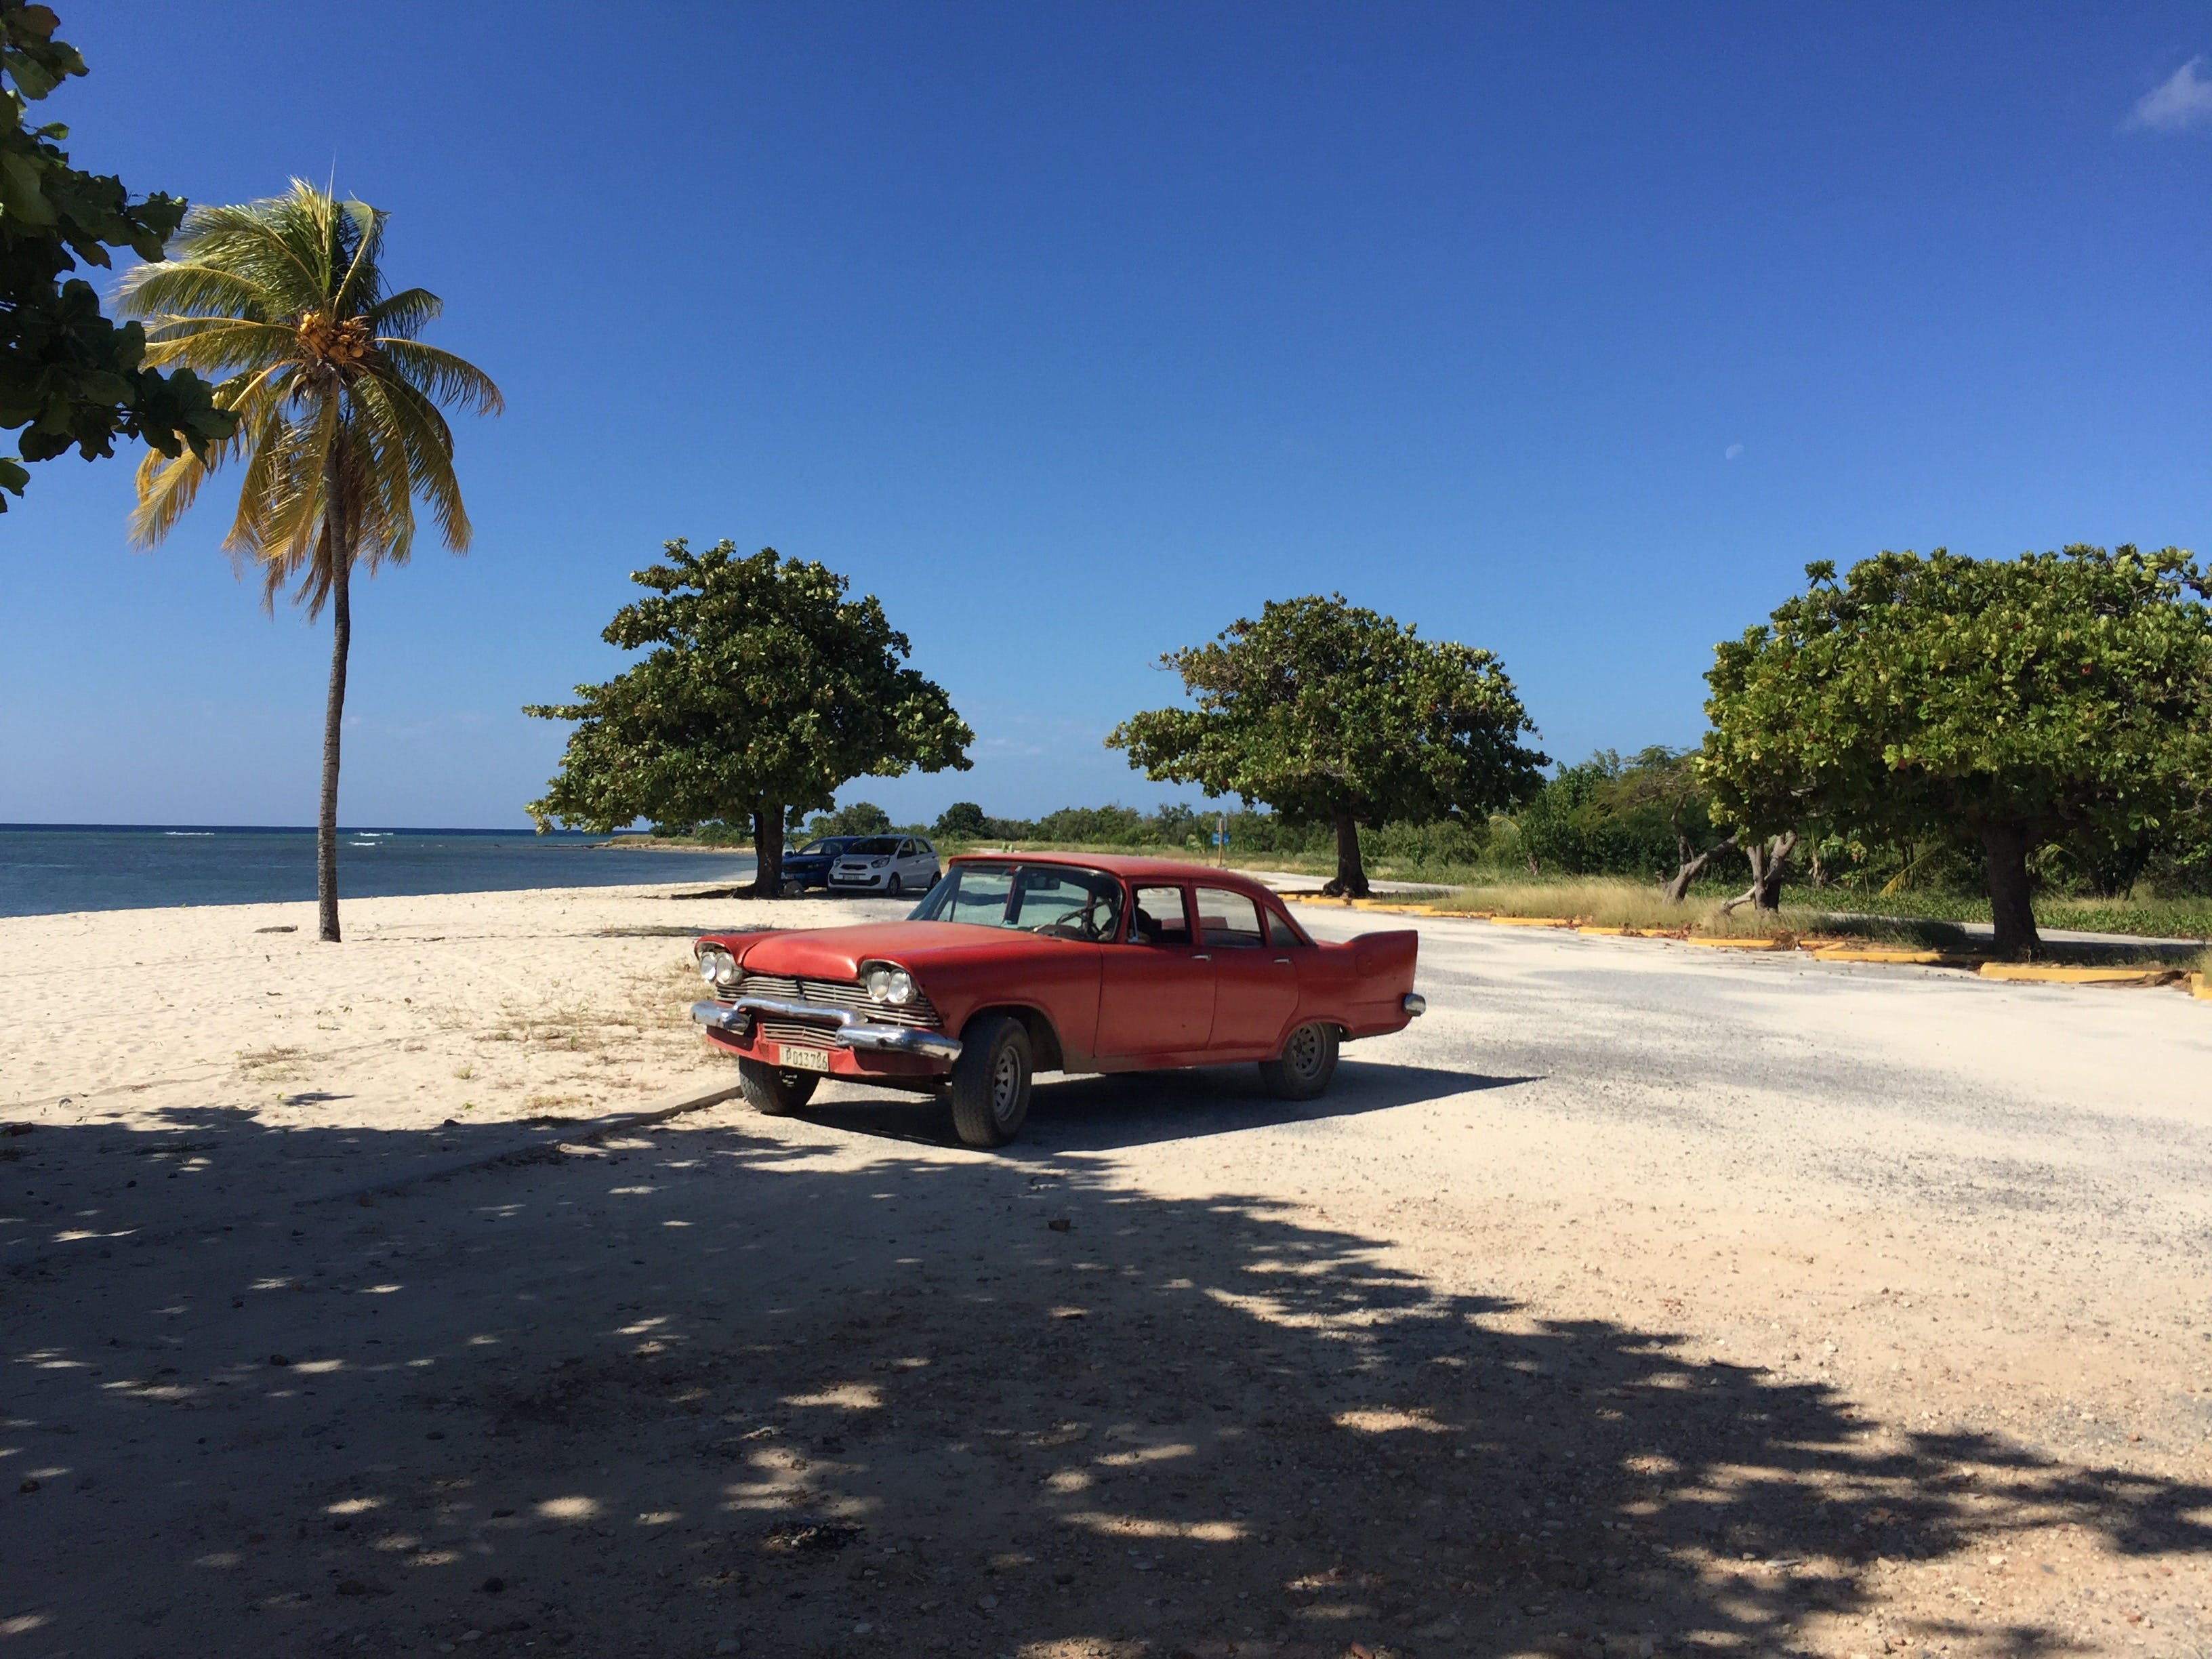 Free stock photo of beach, car, cuba, holidays